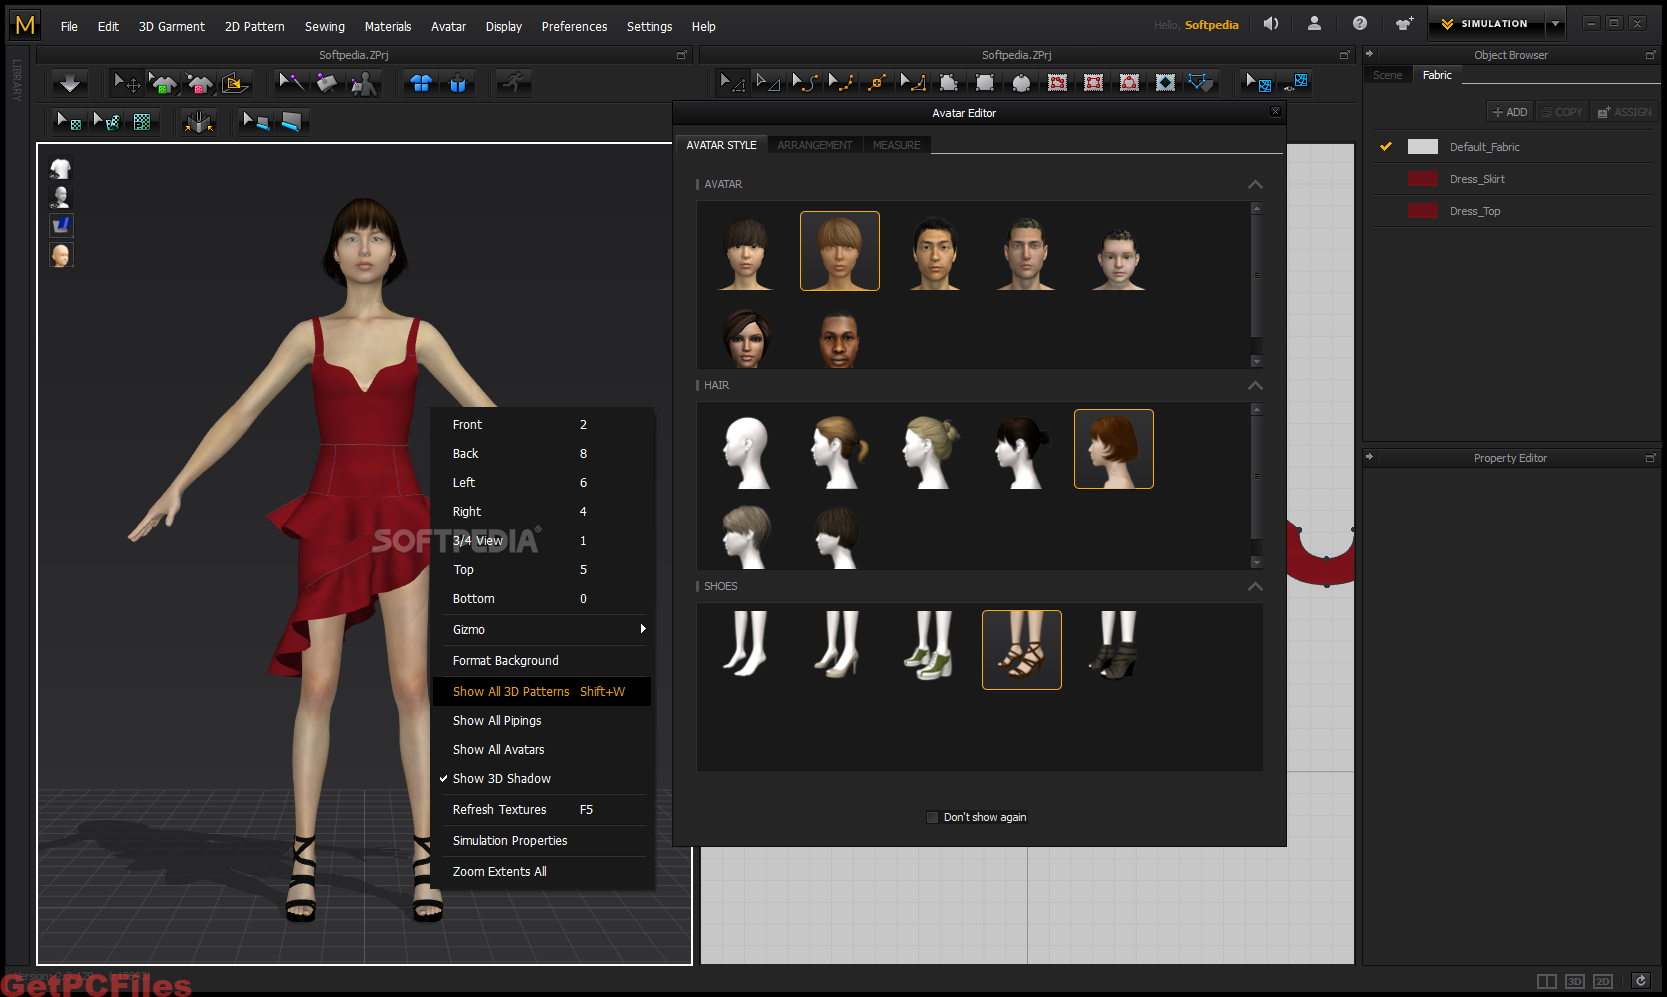 By applying changes to the pattern, this is immediately displayed on the curtain of the 3D garment in real time and you can experiment freely. Multi-layer fabric shapes are supported (wrinkles, wrinkles, wrinkles, swirls, etc.)